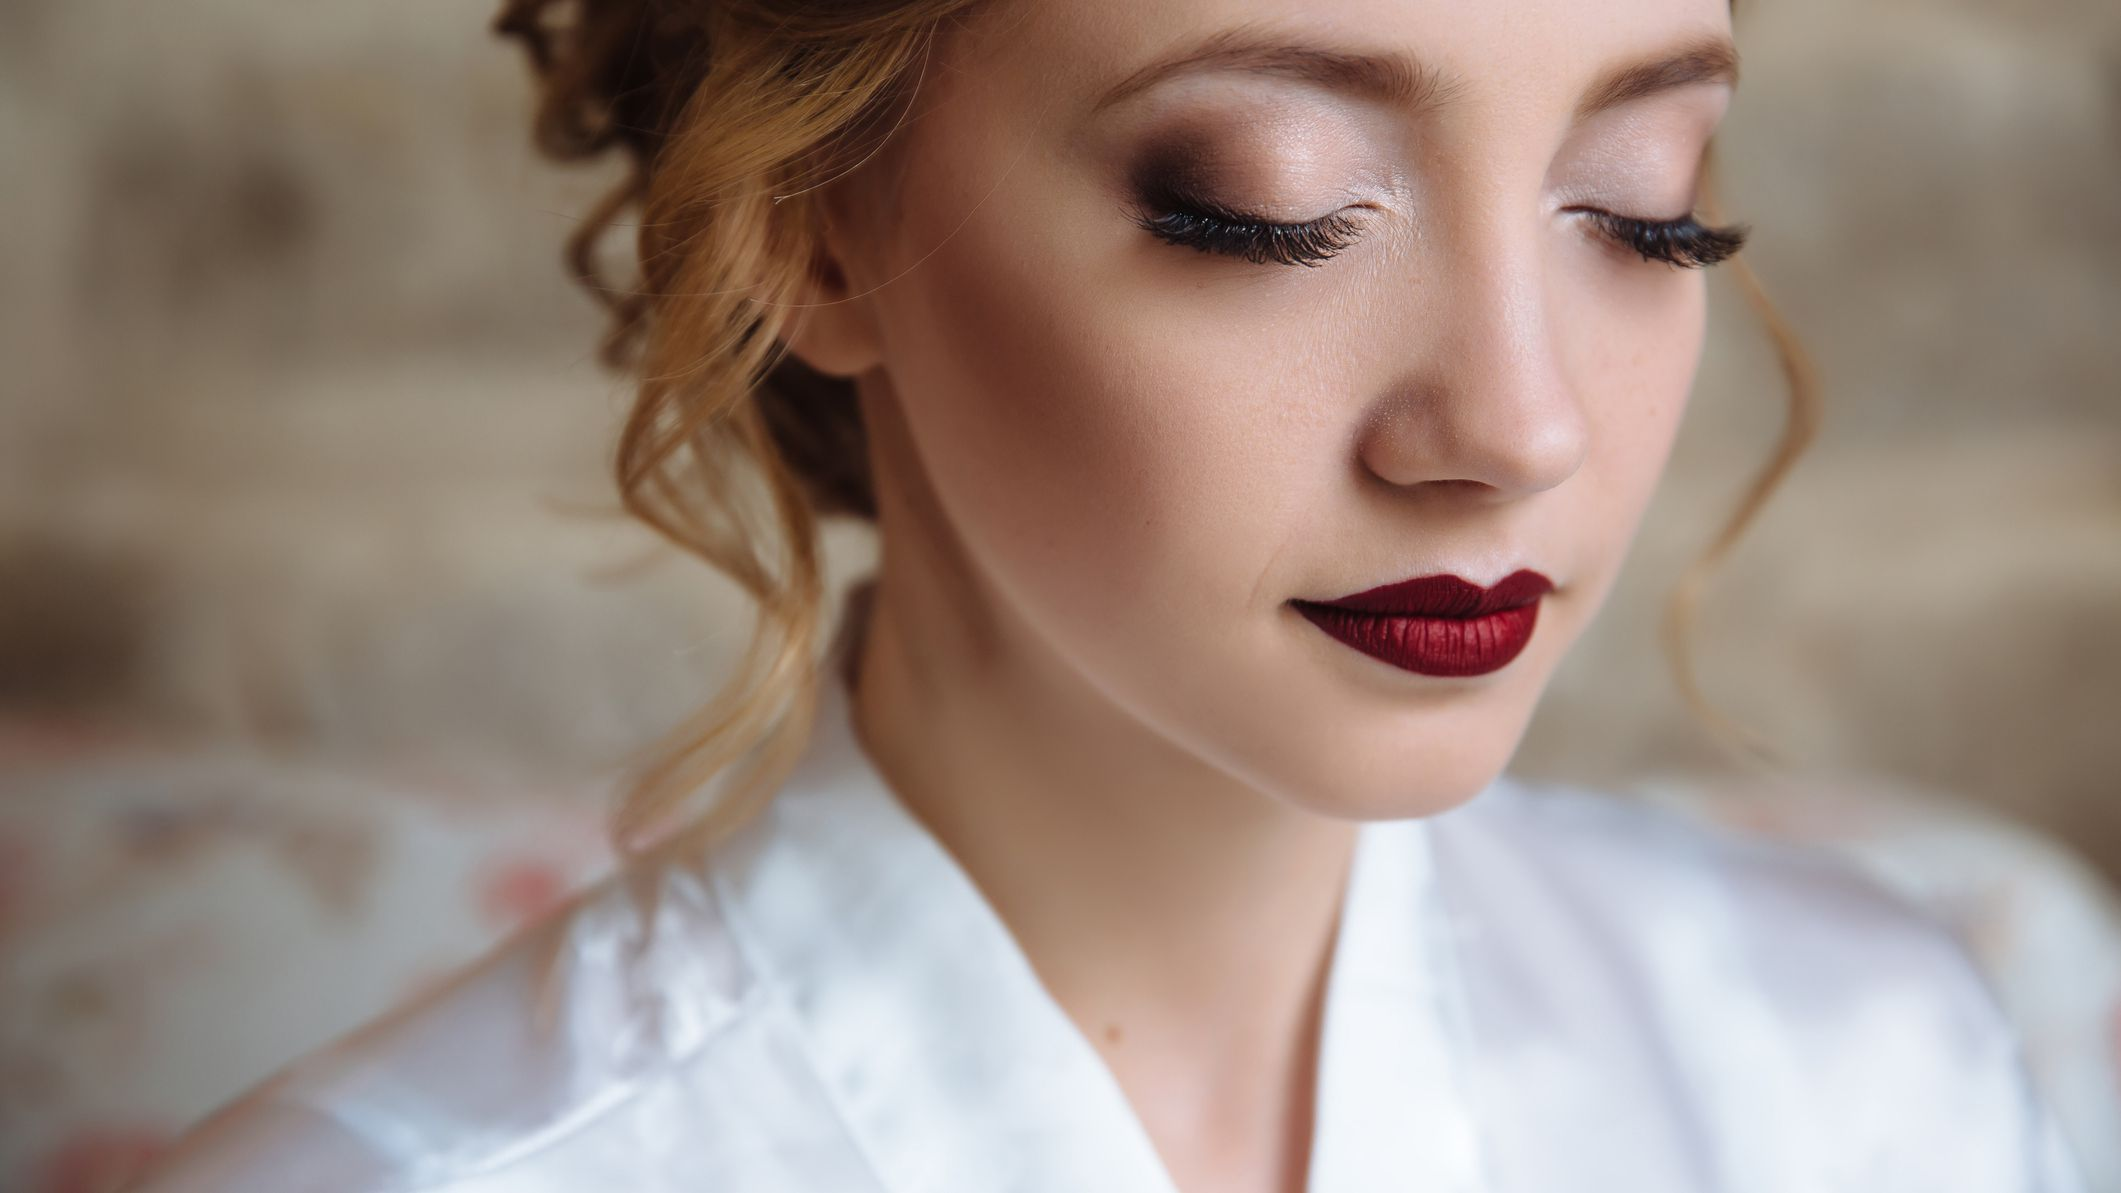 Flawless Wedding Photos: 8 Fool-Proof Makeup Tips for Looking Your